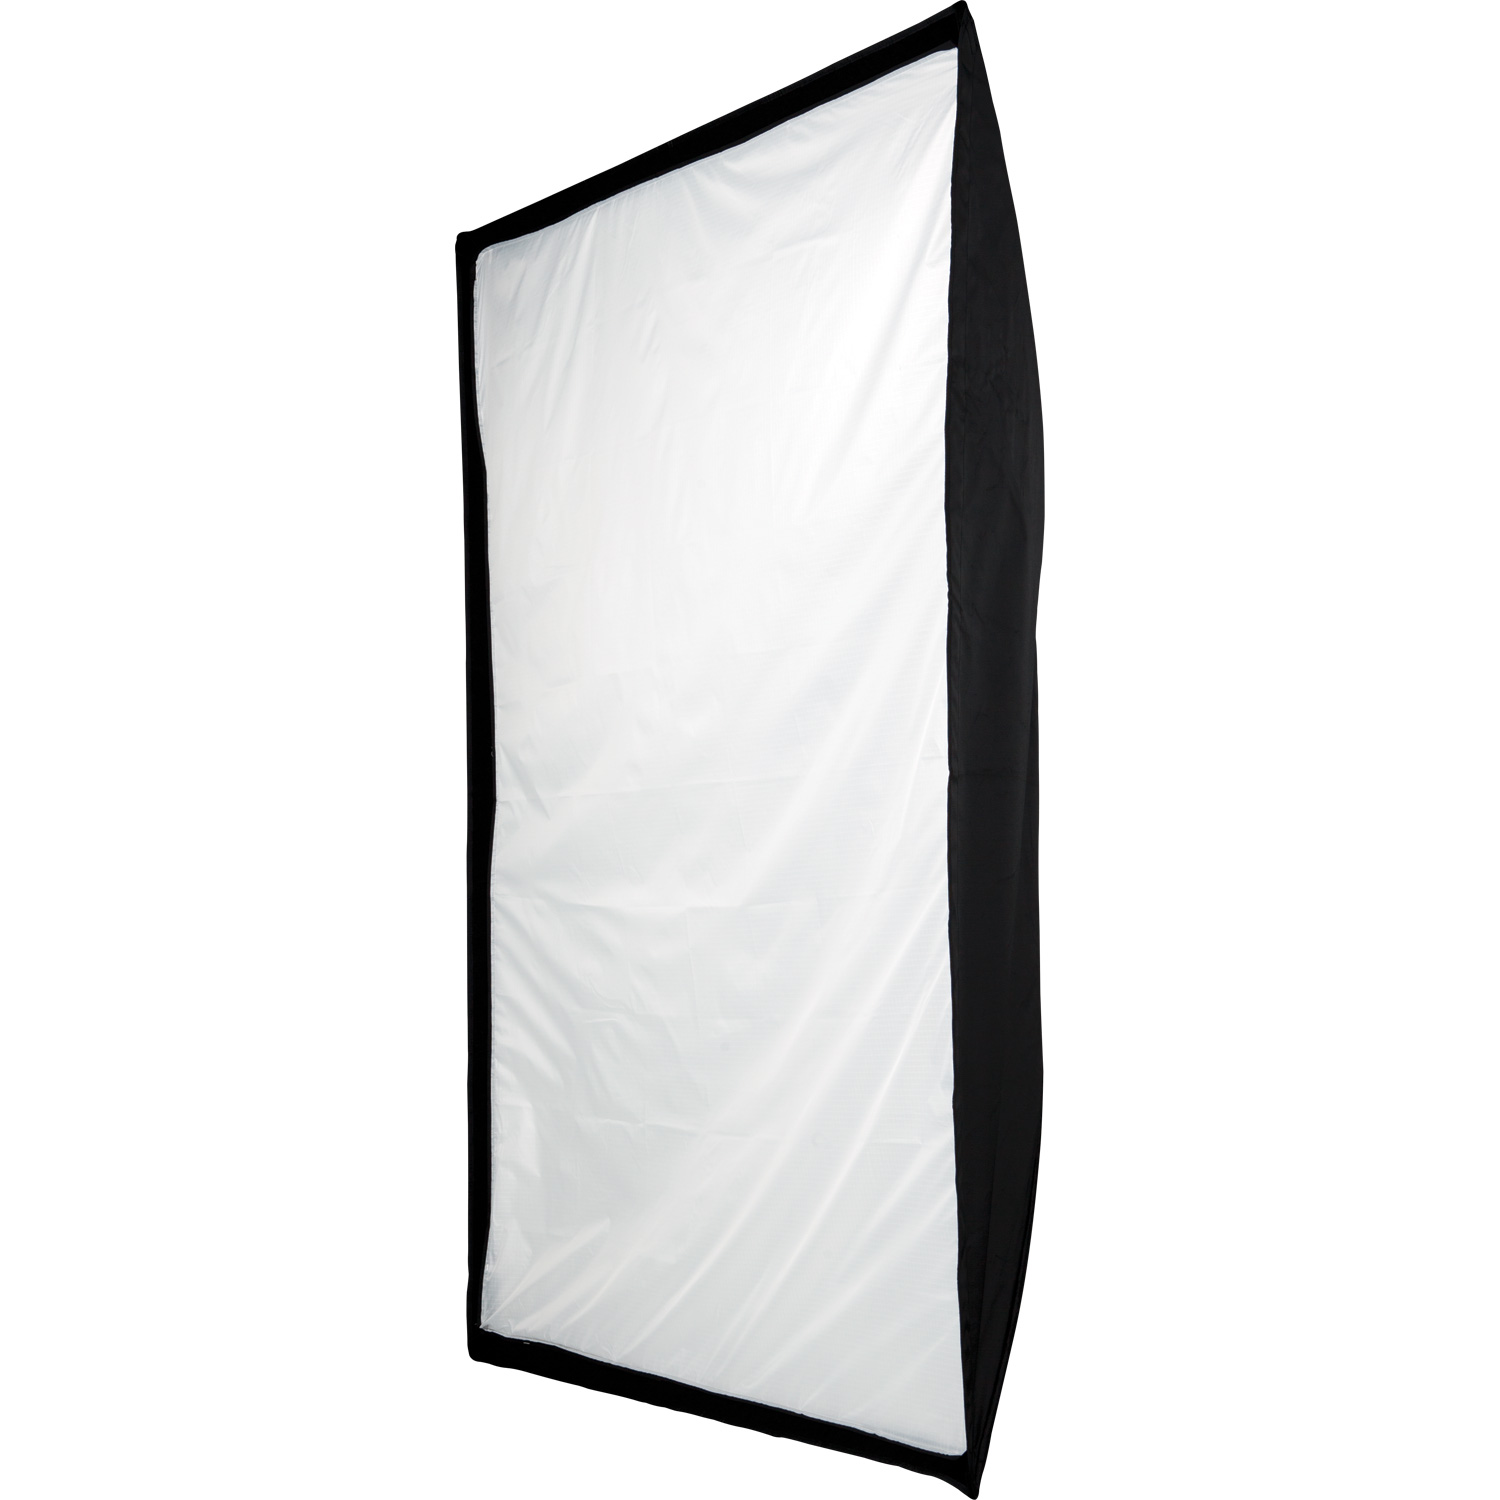 54-in. x 72-in. Pro Shallow Softbox